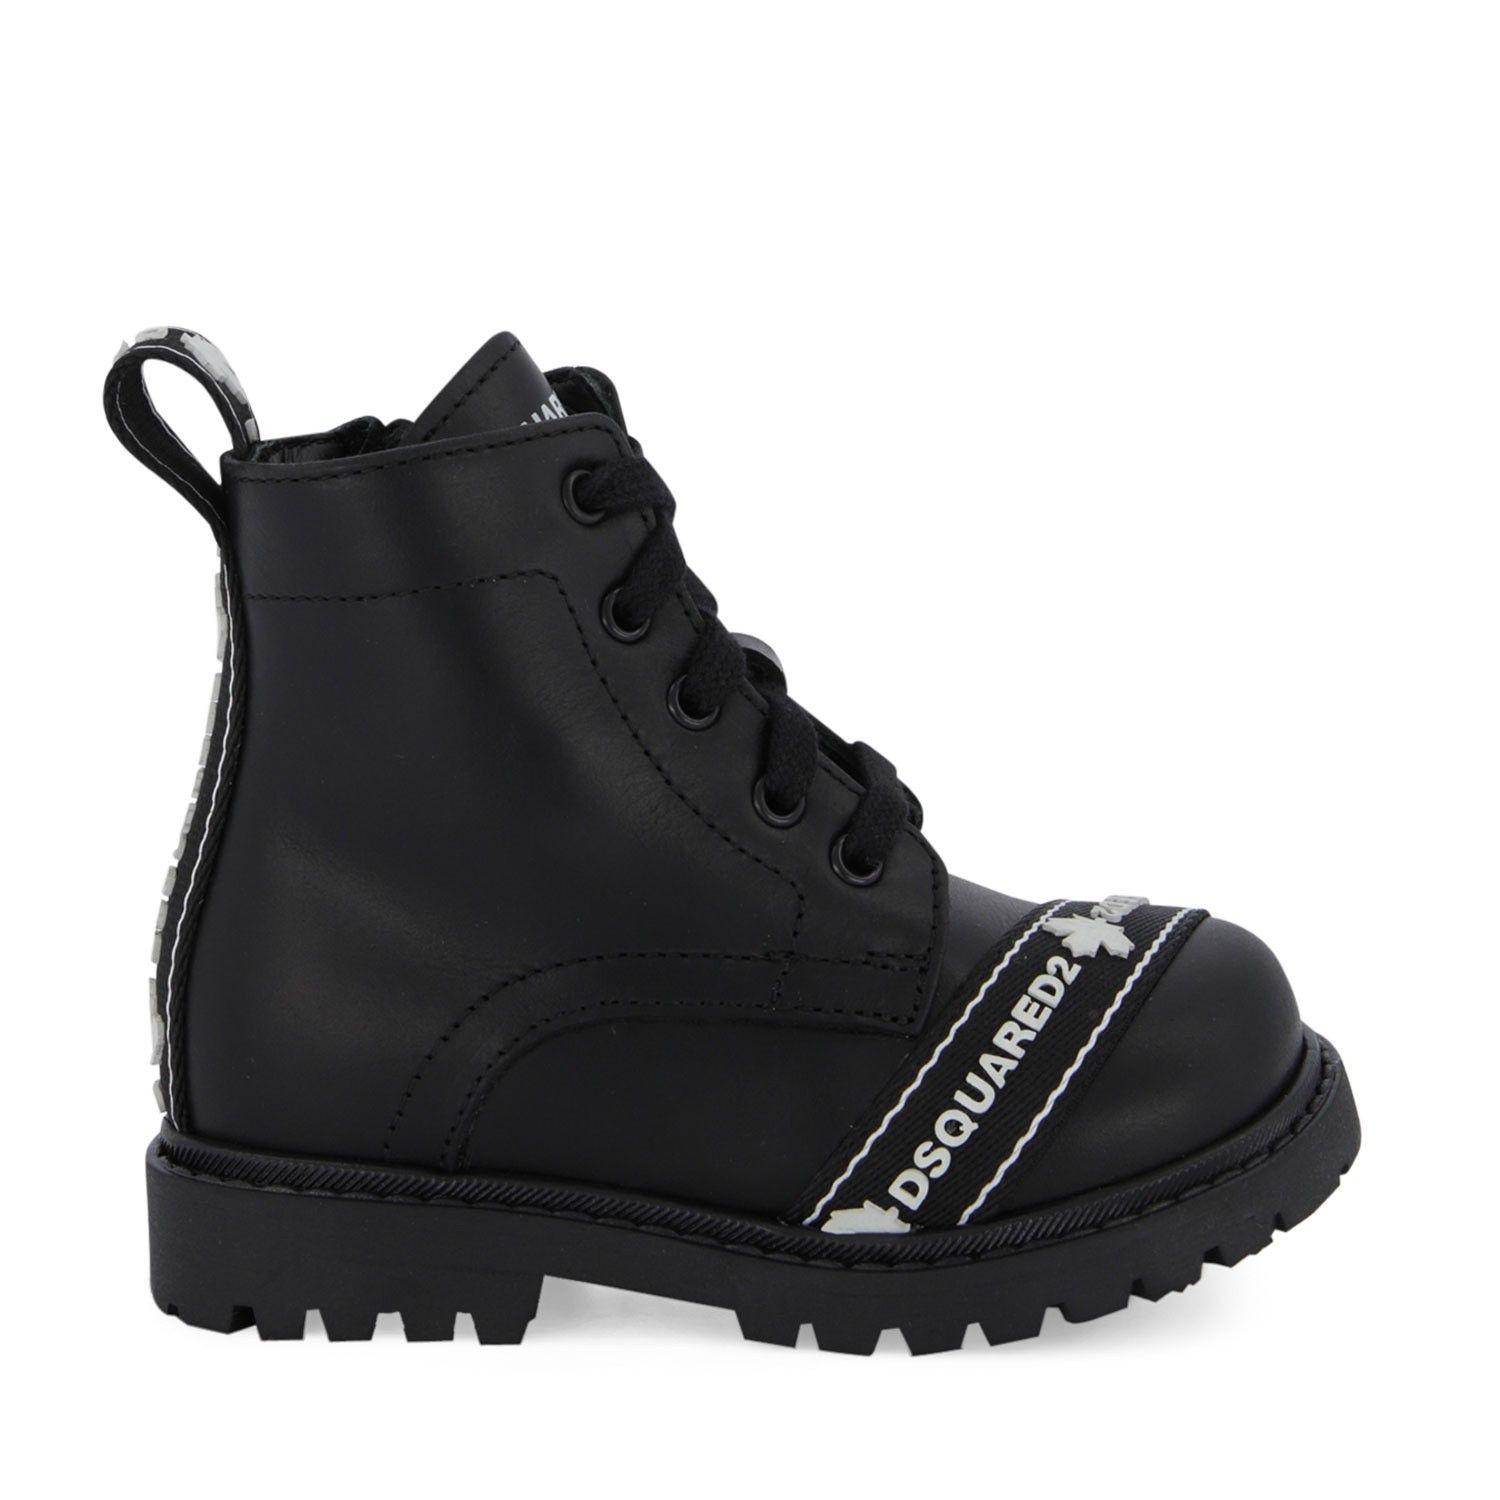 Picture of Dsquared2 65052 kids boots black